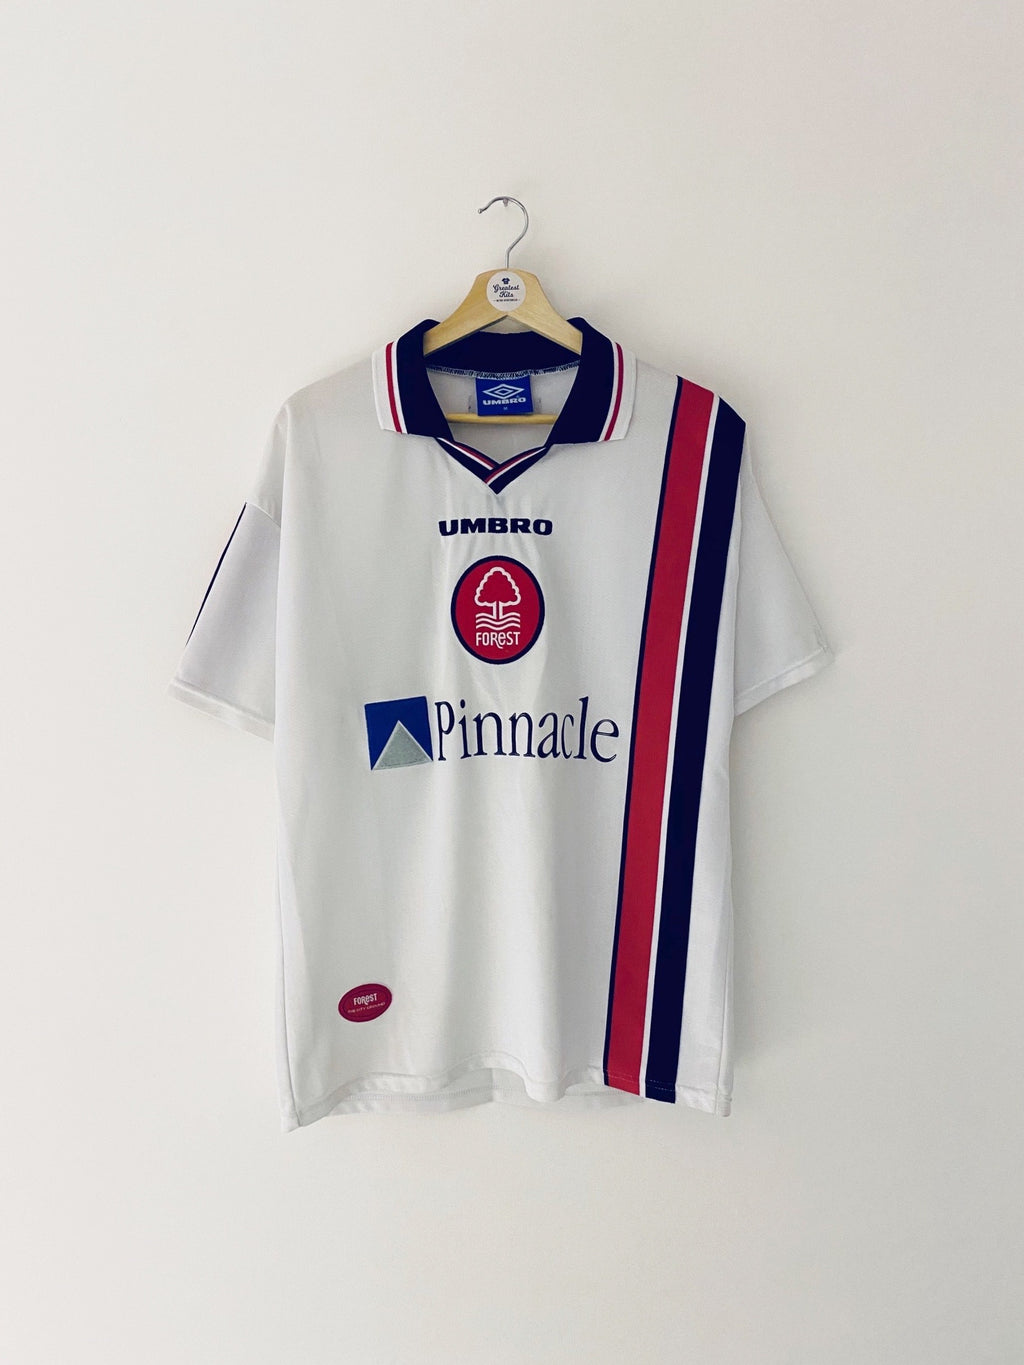 1998/99 Nottingham Forest Away Shirt (M) 7.5/10